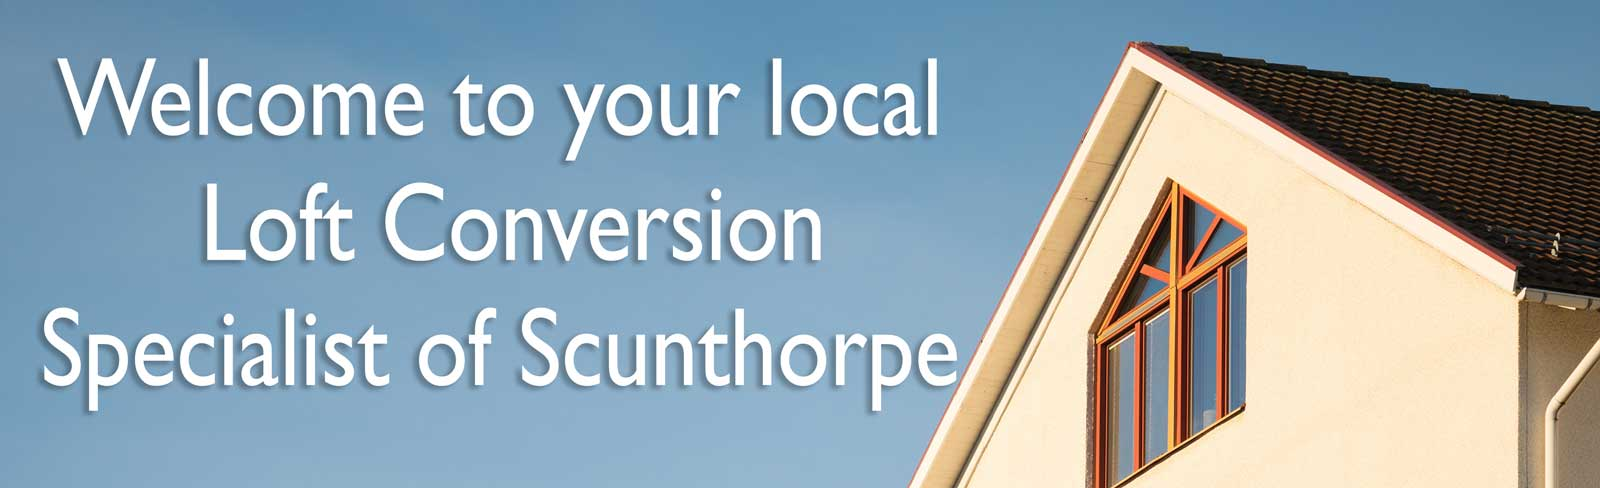 welcome-loft-conversion-specialists-scunthorpe-contemporary-attic-bedroom